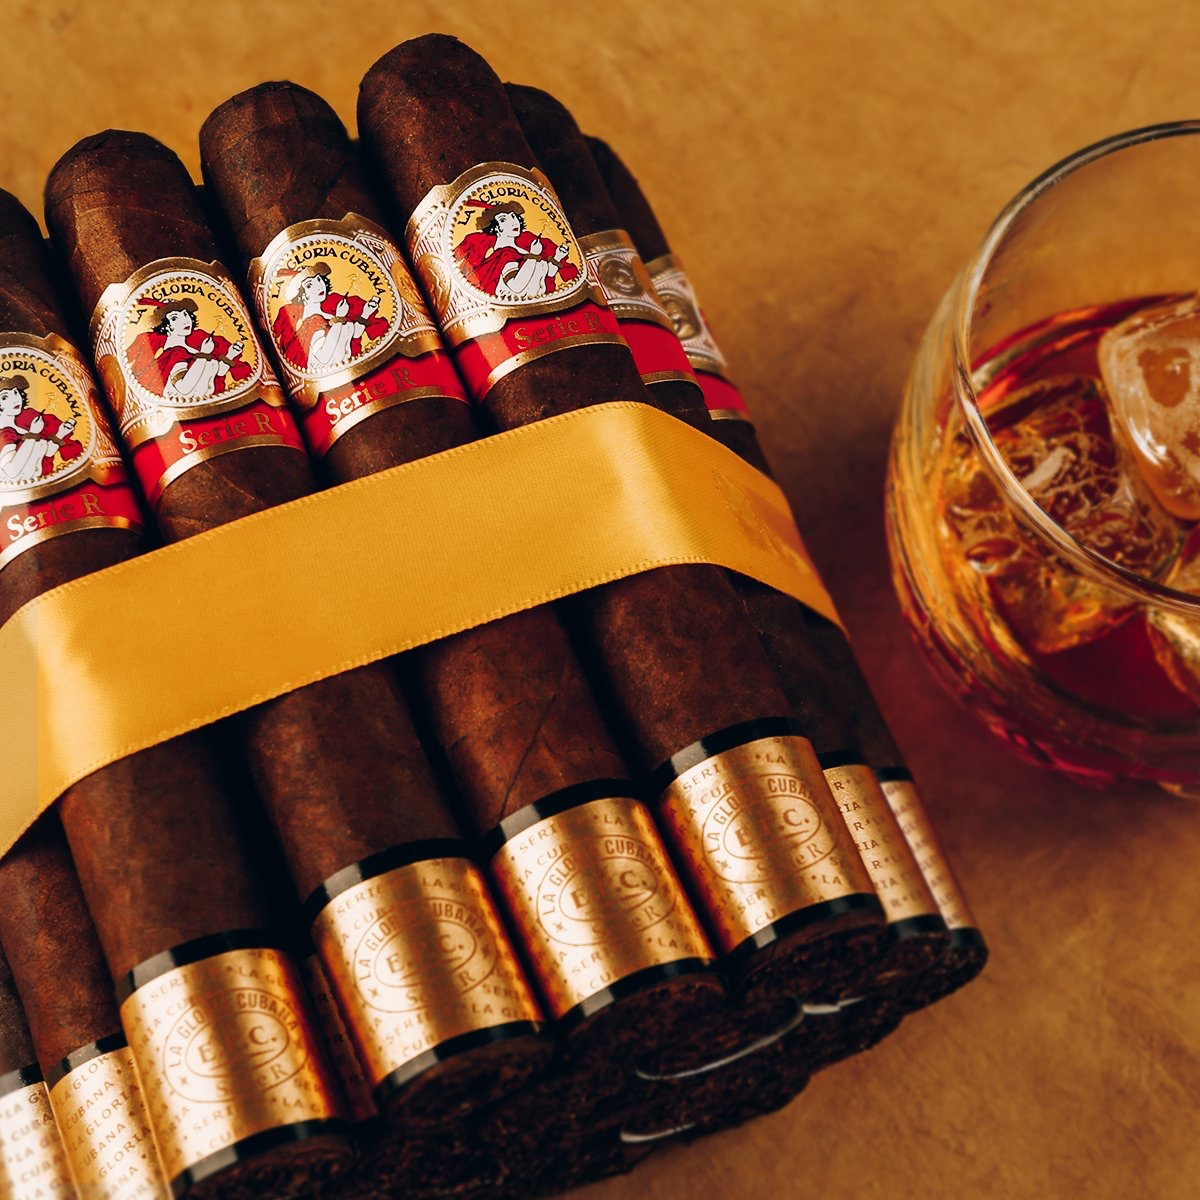 La Gloria Cubana Serie R No. 7 Natural  - Box of 24 image